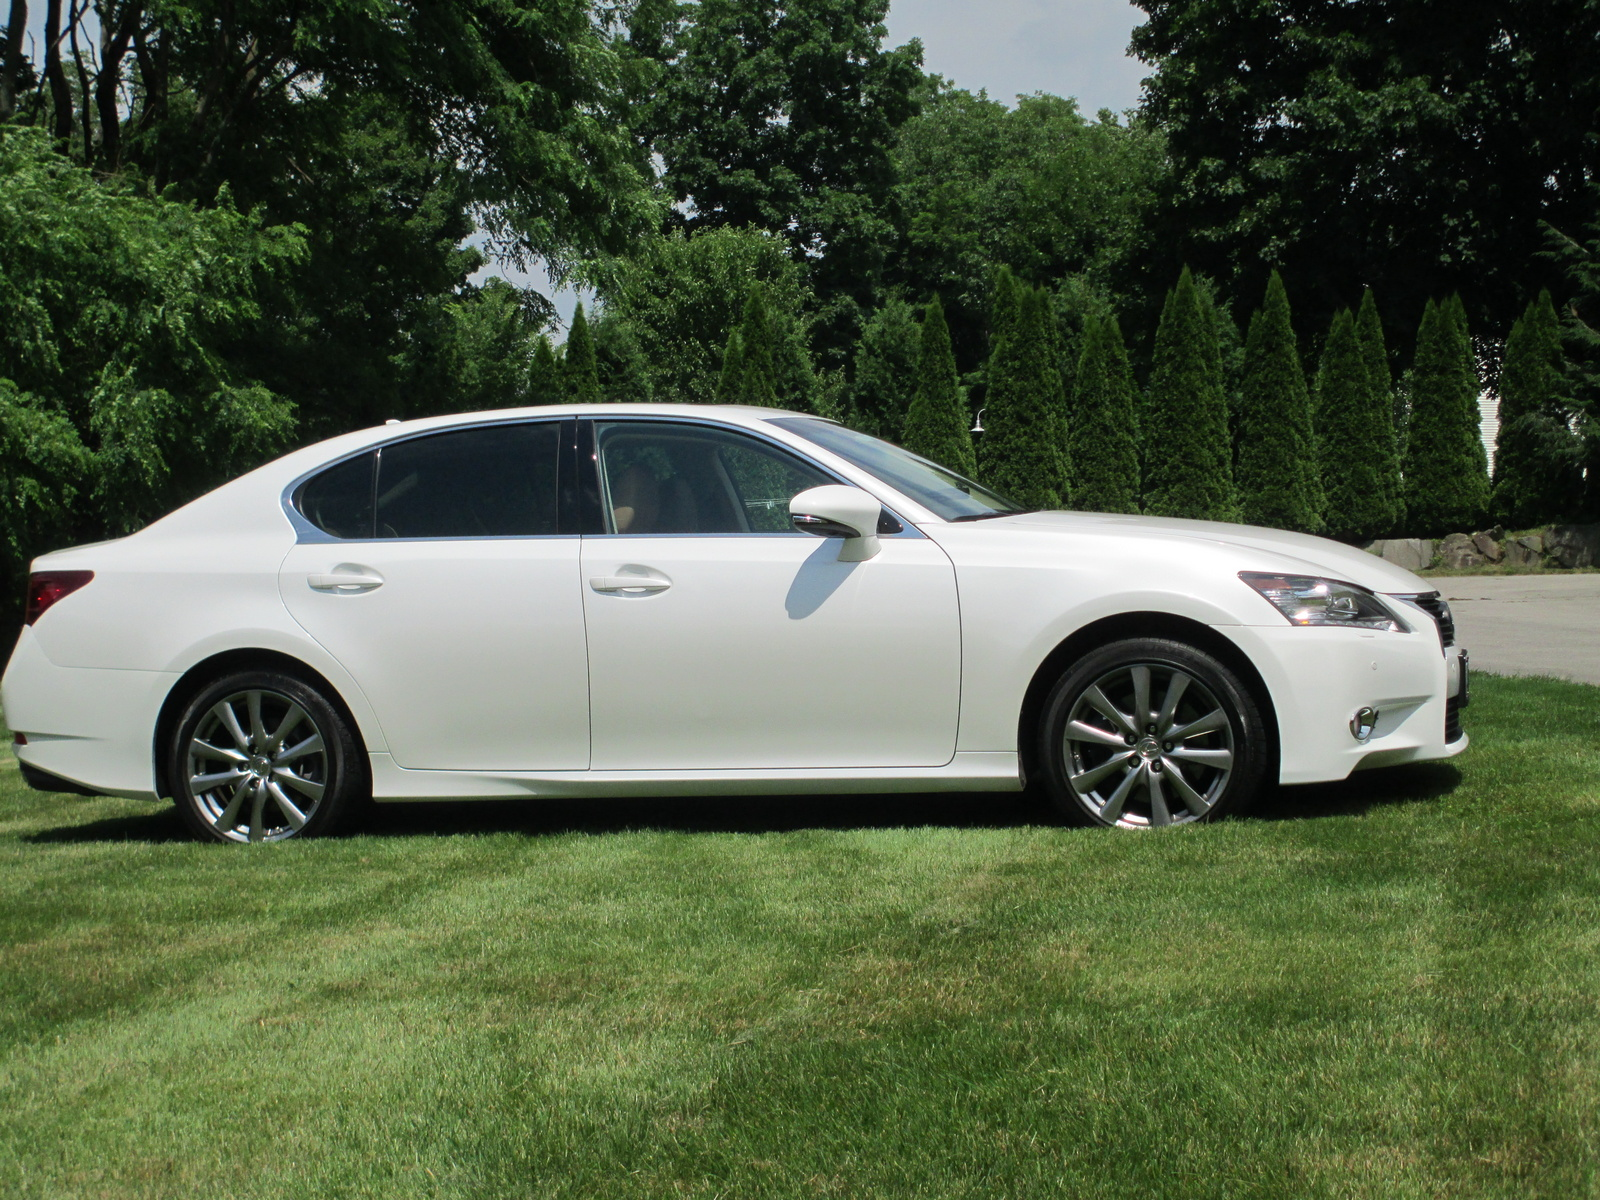 2013 lexus gs 350 pictures cargurus. Black Bedroom Furniture Sets. Home Design Ideas